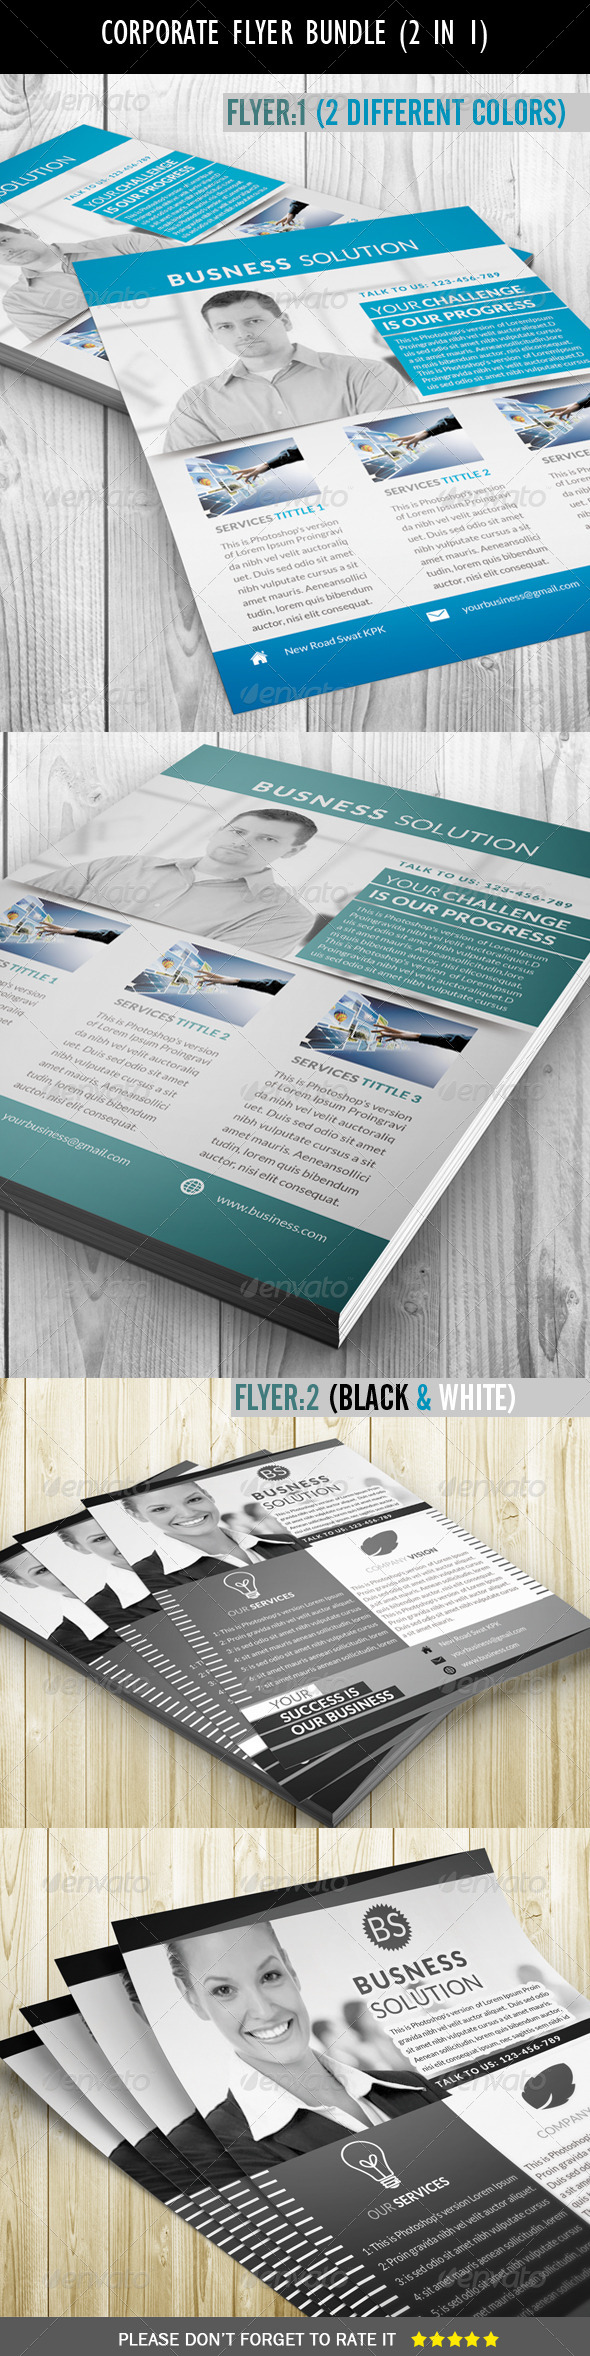 GraphicRiver Corporate Flyer Bundle 2 in 1 7040418